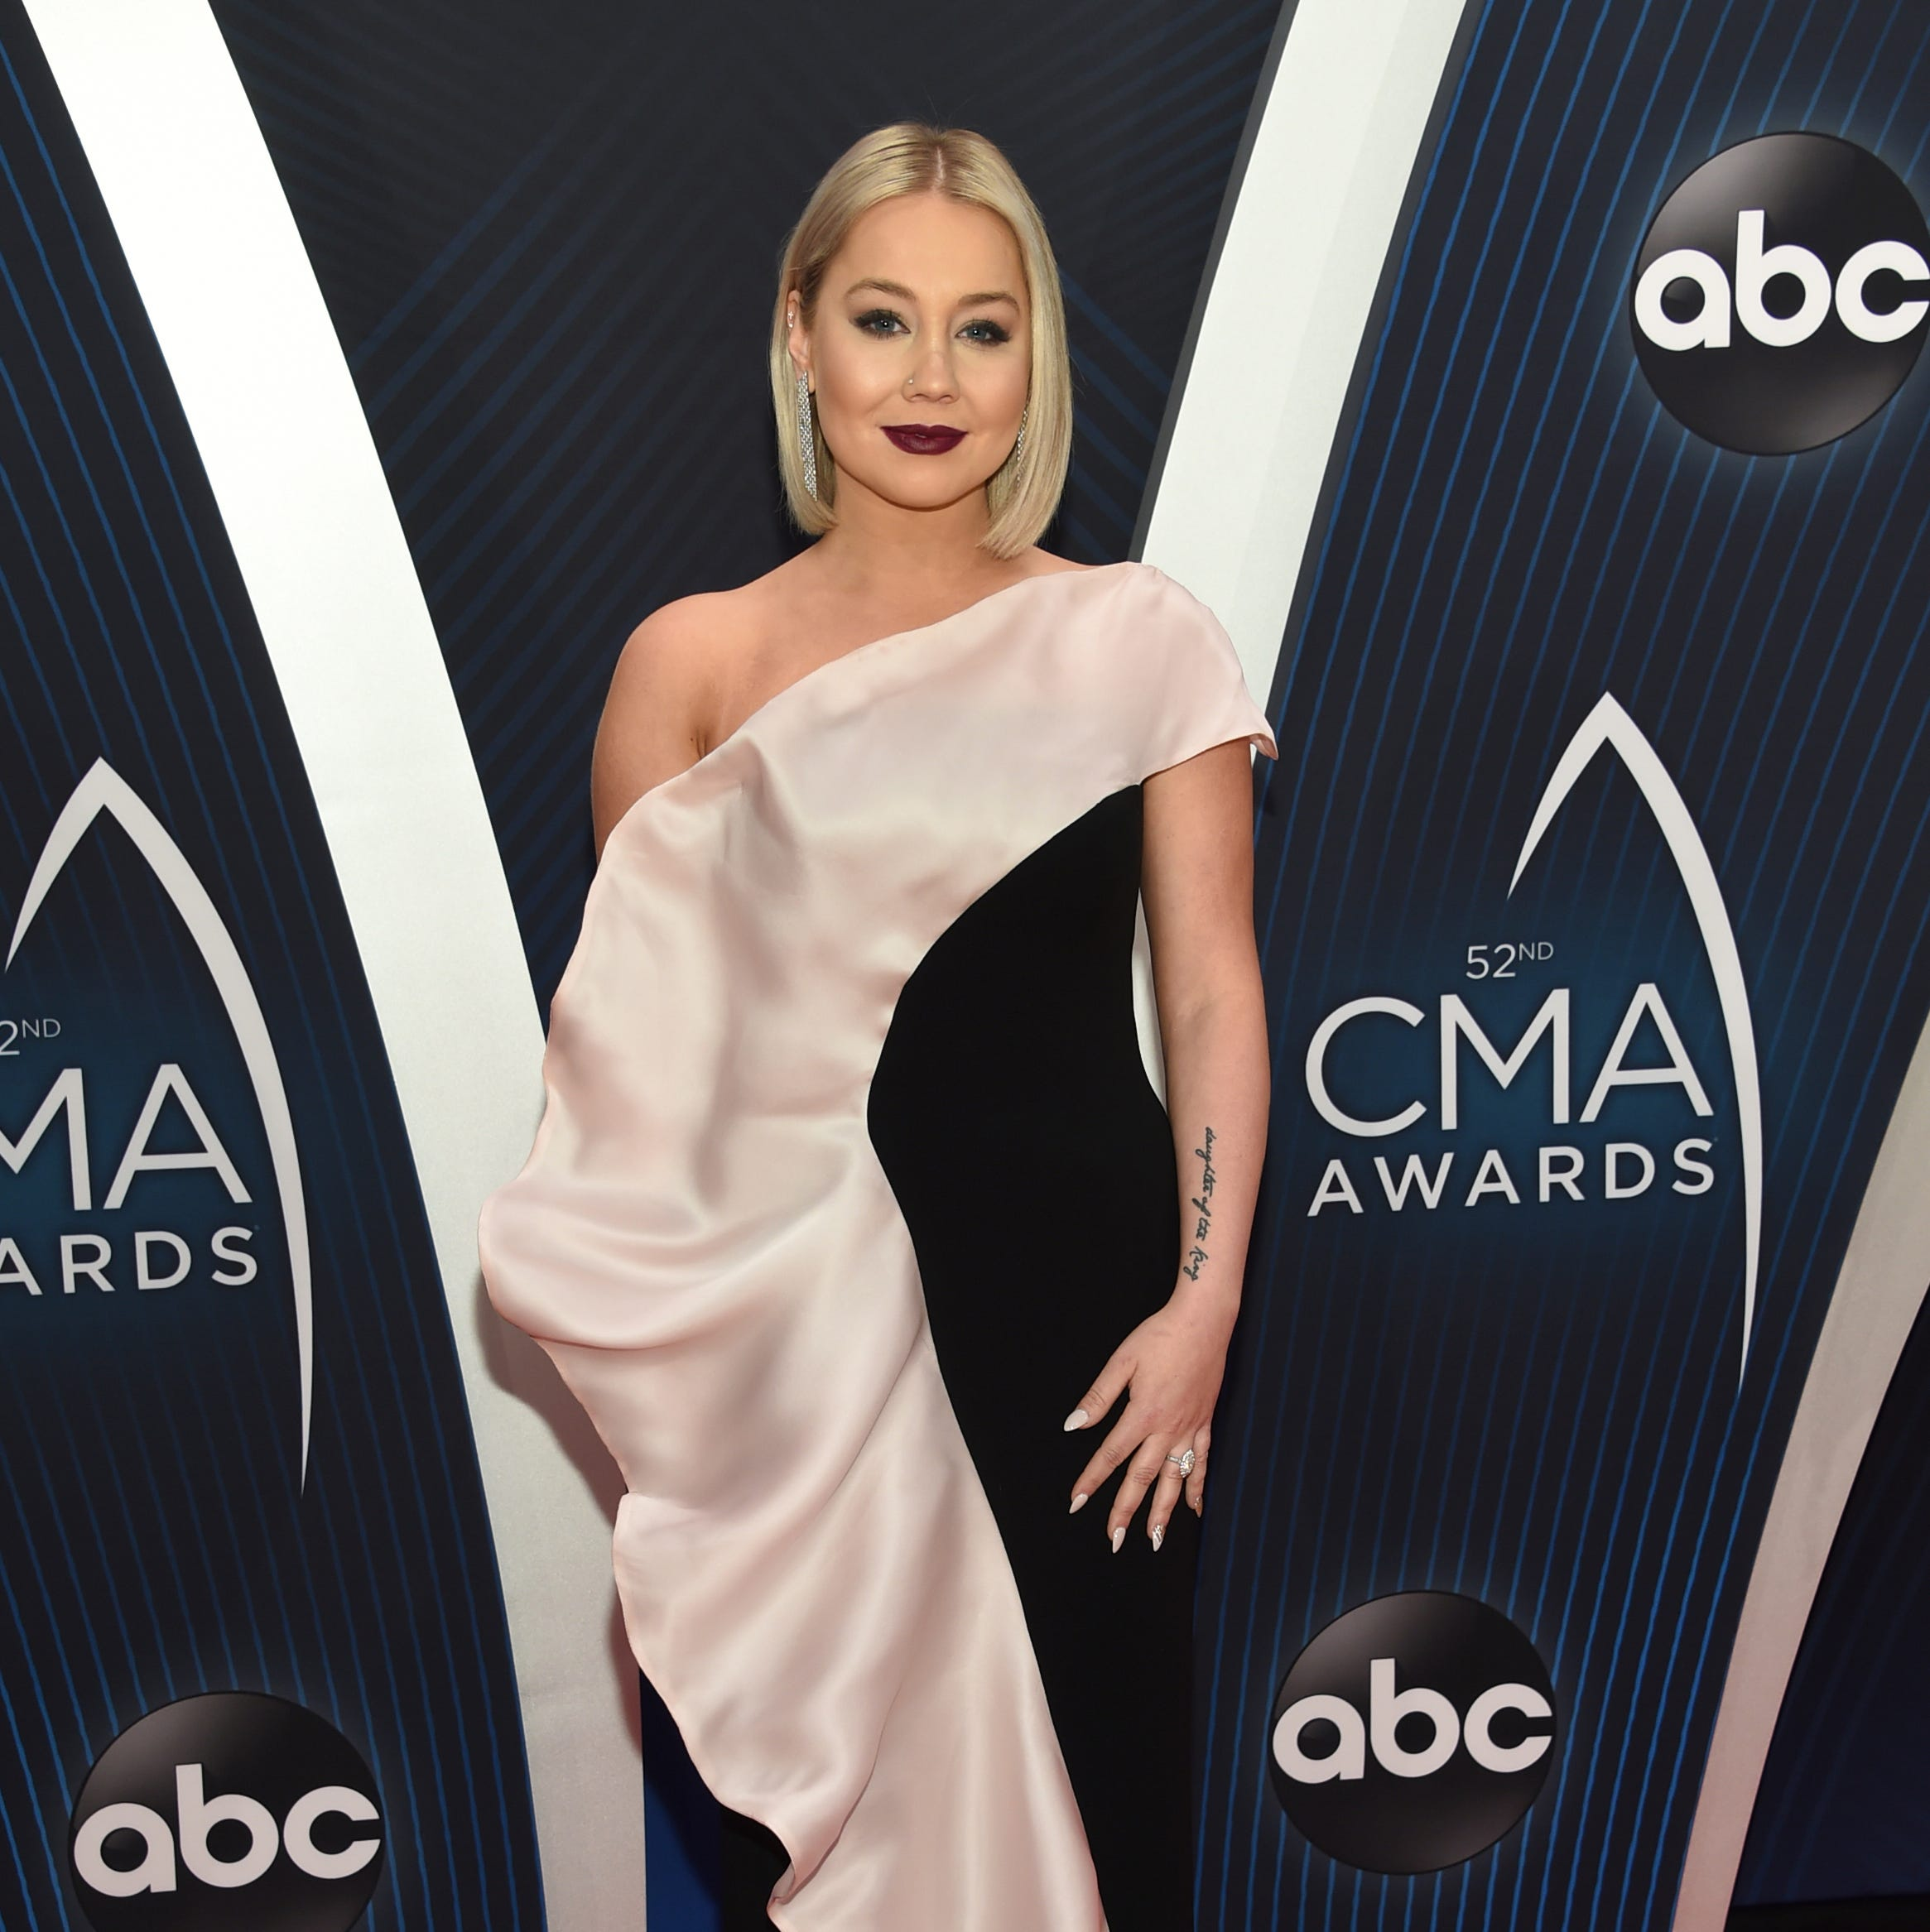 RaeLynn arrives at the 52nd annual CMA Awards at Bridgestone Arena on Wednesday, Nov. 14, 2018, in Nashville, Tenn.